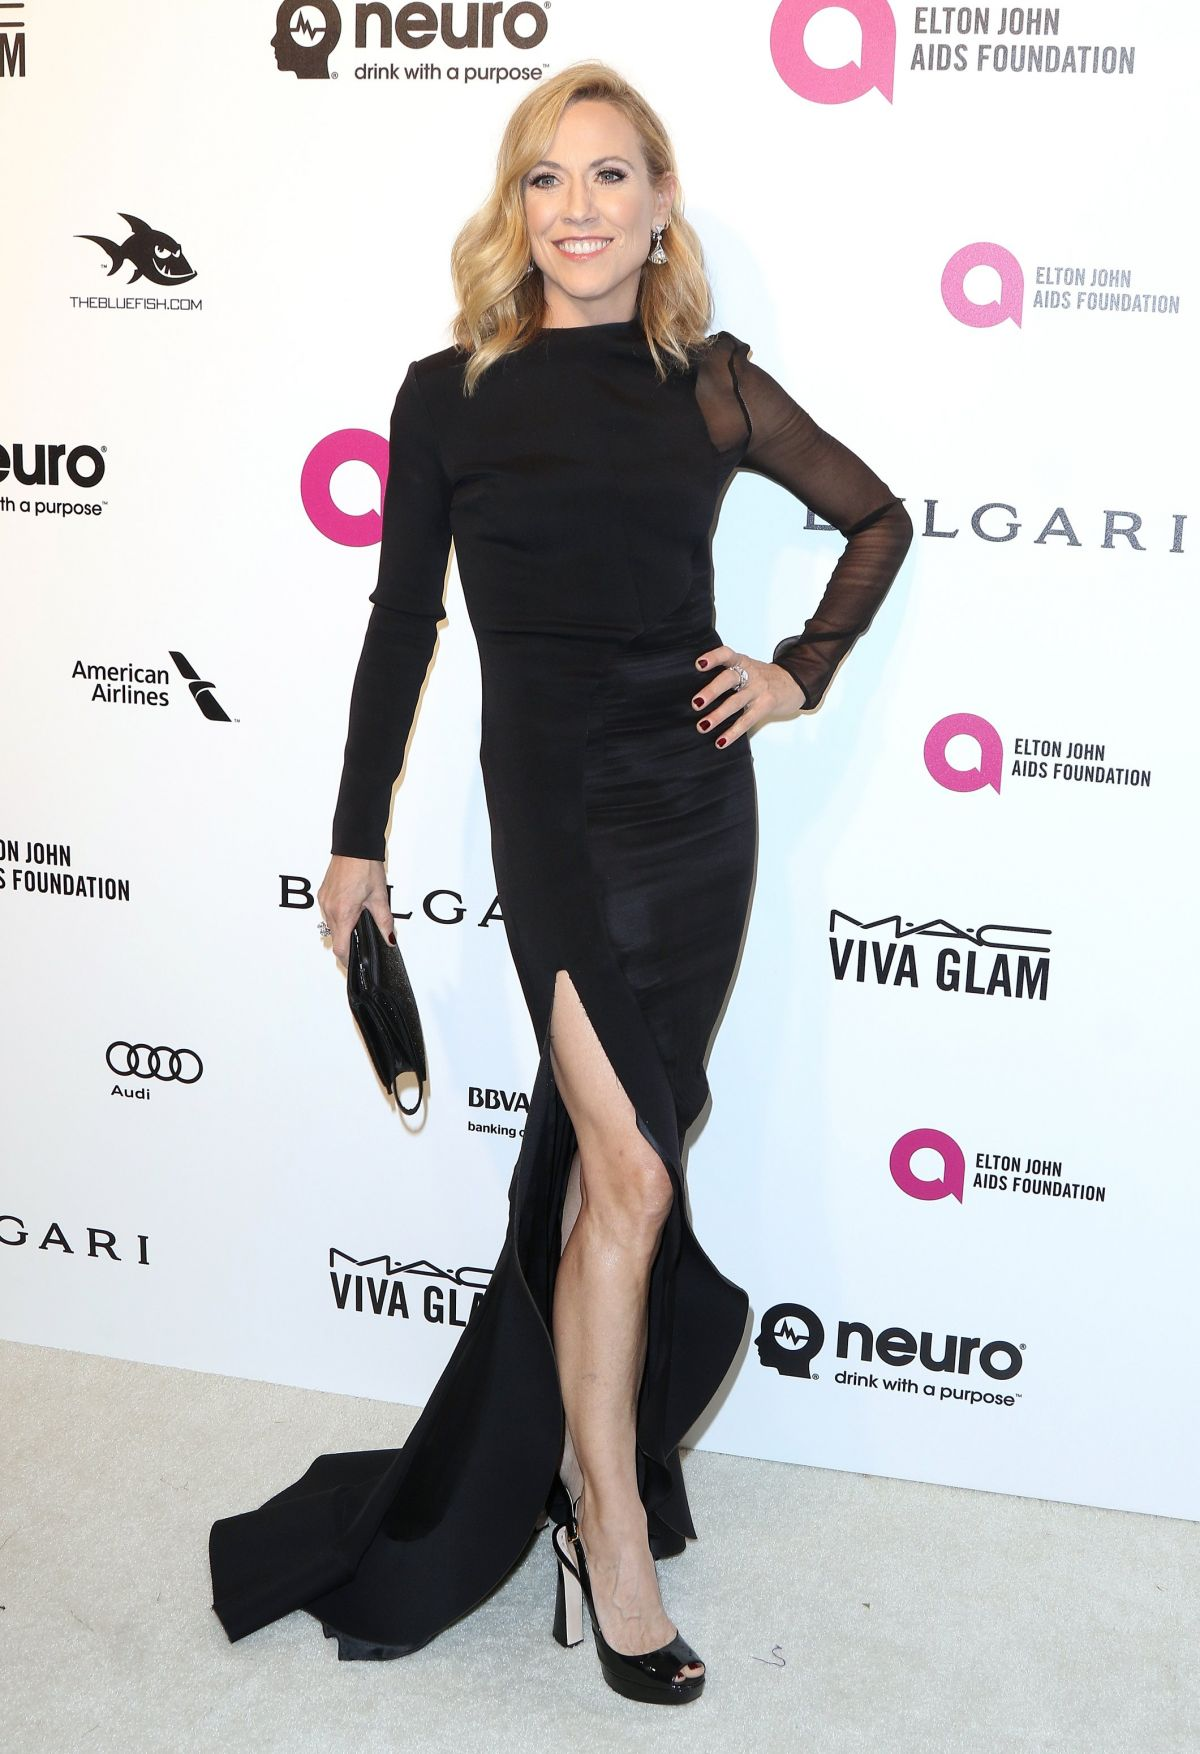 SHERYL CROW at Elton John Aids Foundation's Oscar Viewing Party in West Hollywood 02/28/2016